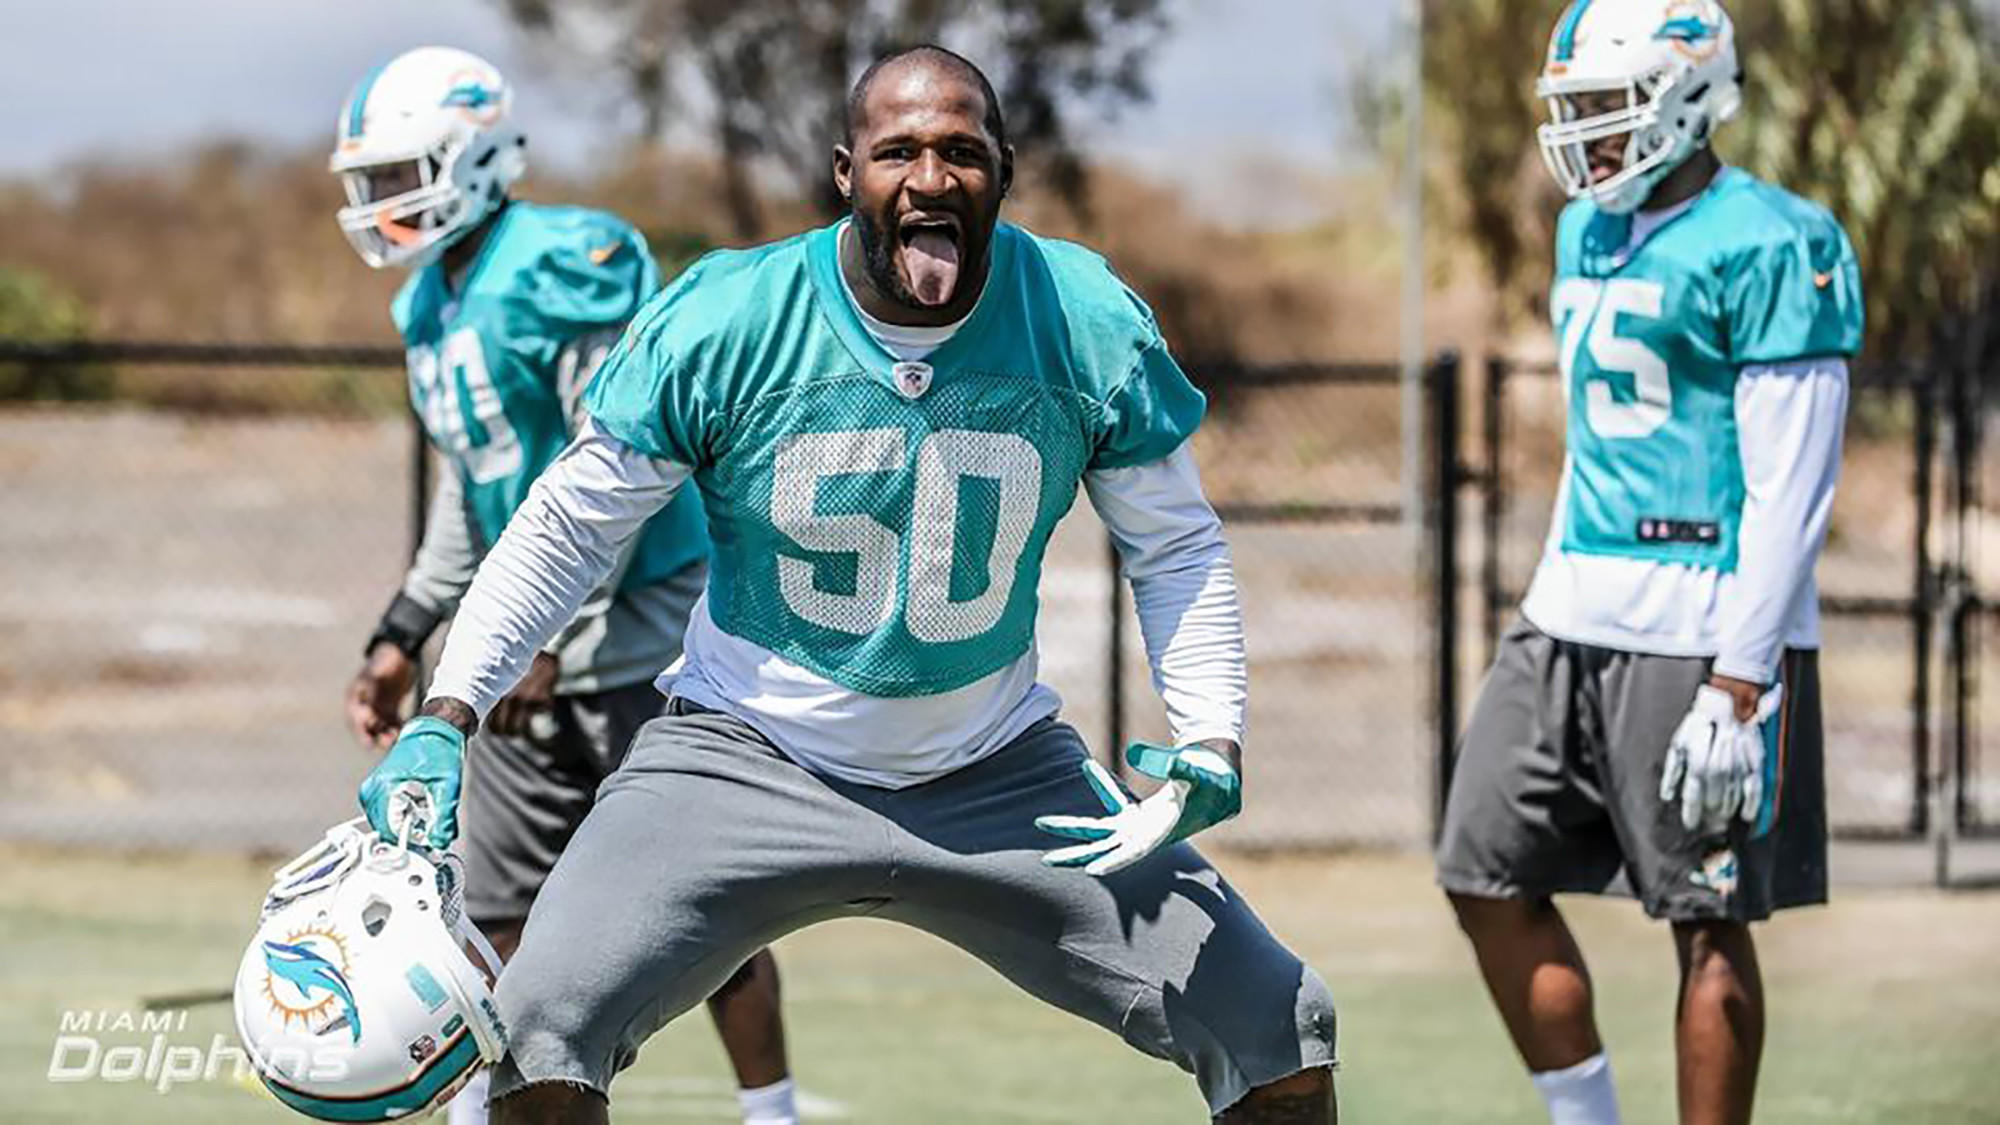 Fl-sp-dolphins-andre-branch-20180214